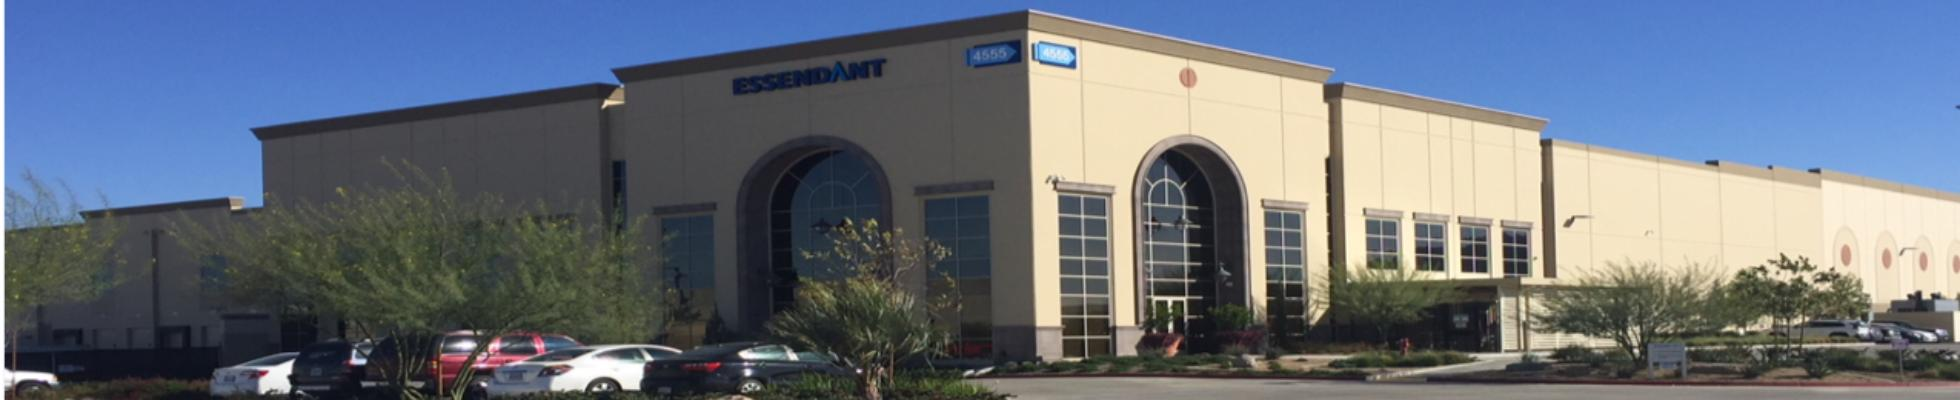 Working at Essendant in Twinsburg, OH: Employee Reviews